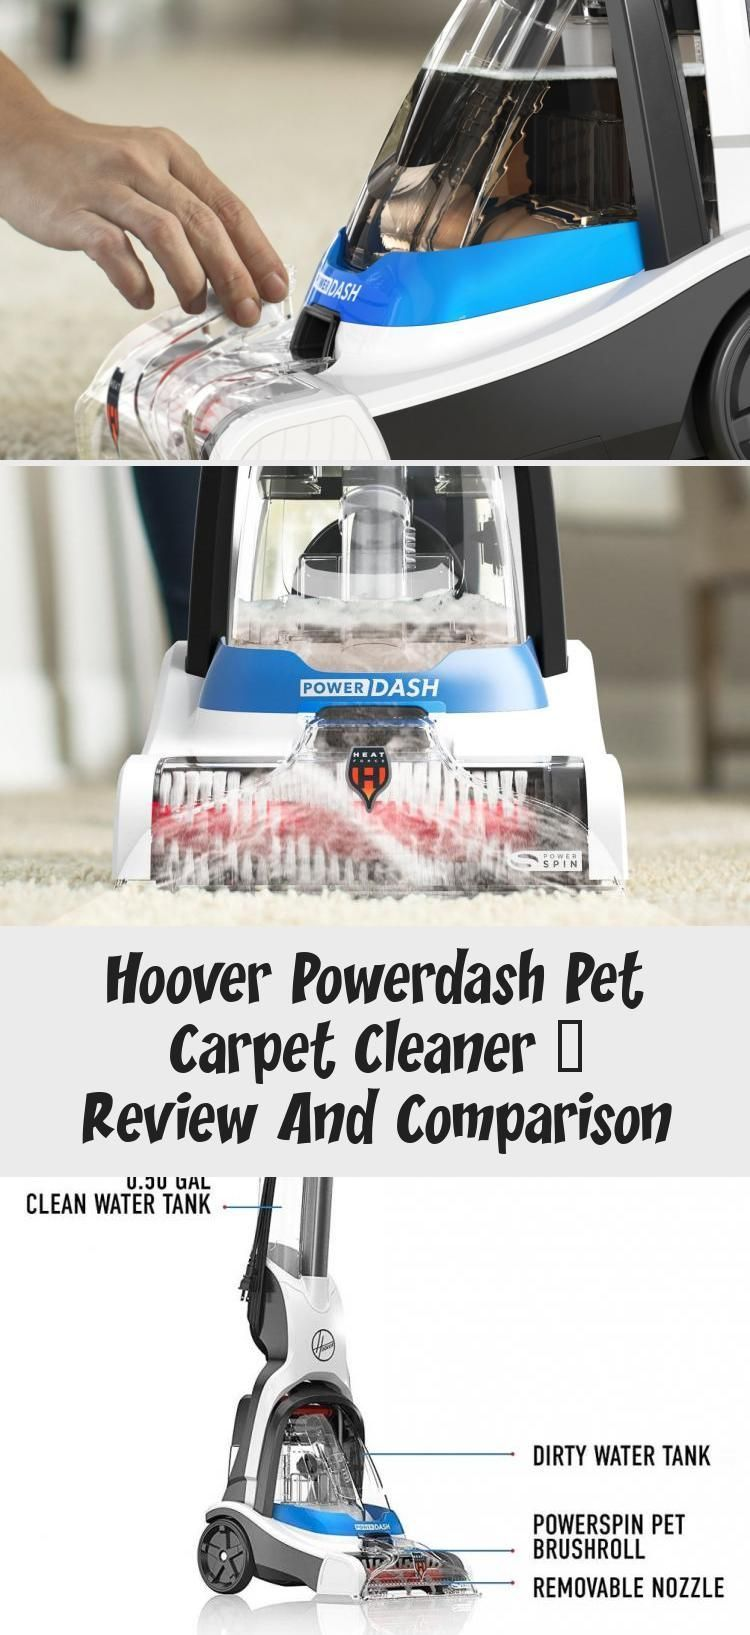 Hoover PowerDash Pet Carpet Cleaner review and